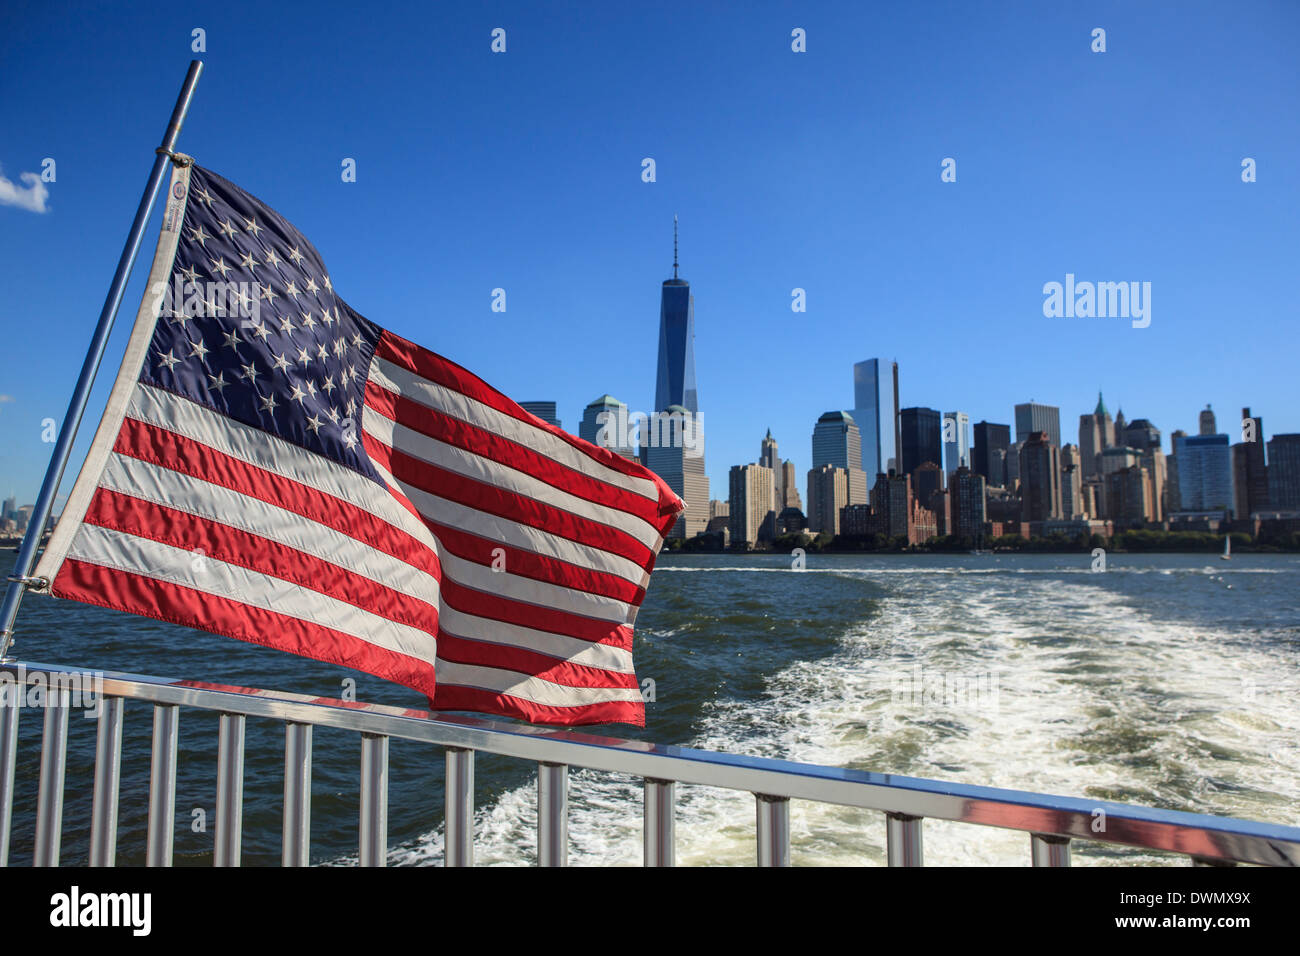 1 World Trade Centre Tower and New York's financial district as seen from the Hudson River, New York, United States of America - Stock Image